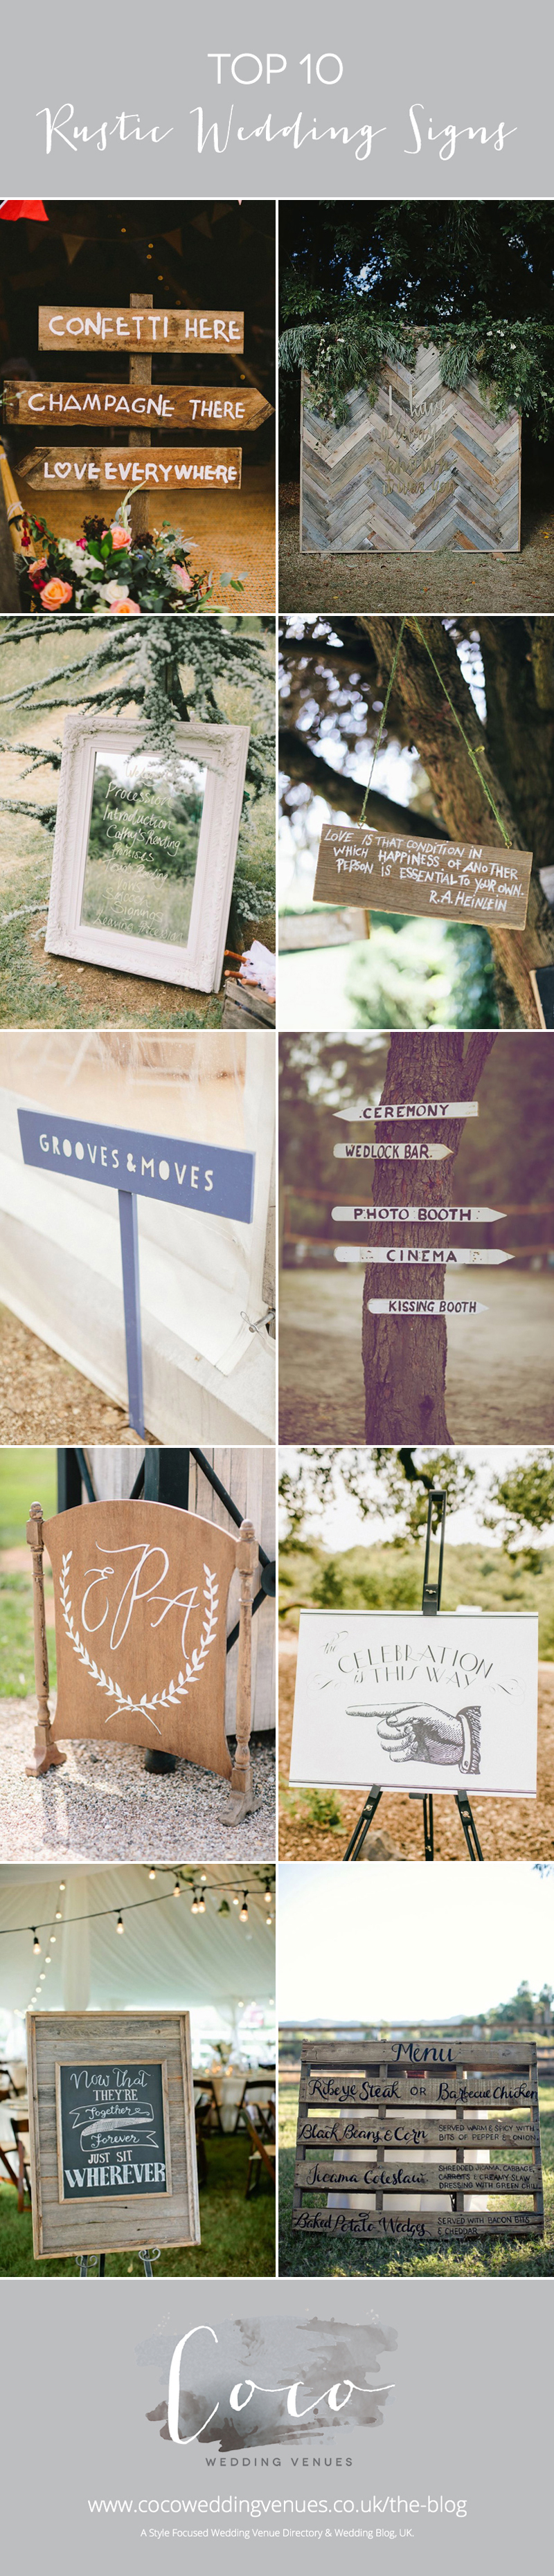 wedding-signage-cocos-top-10-coco-wedding-venues-pin-it